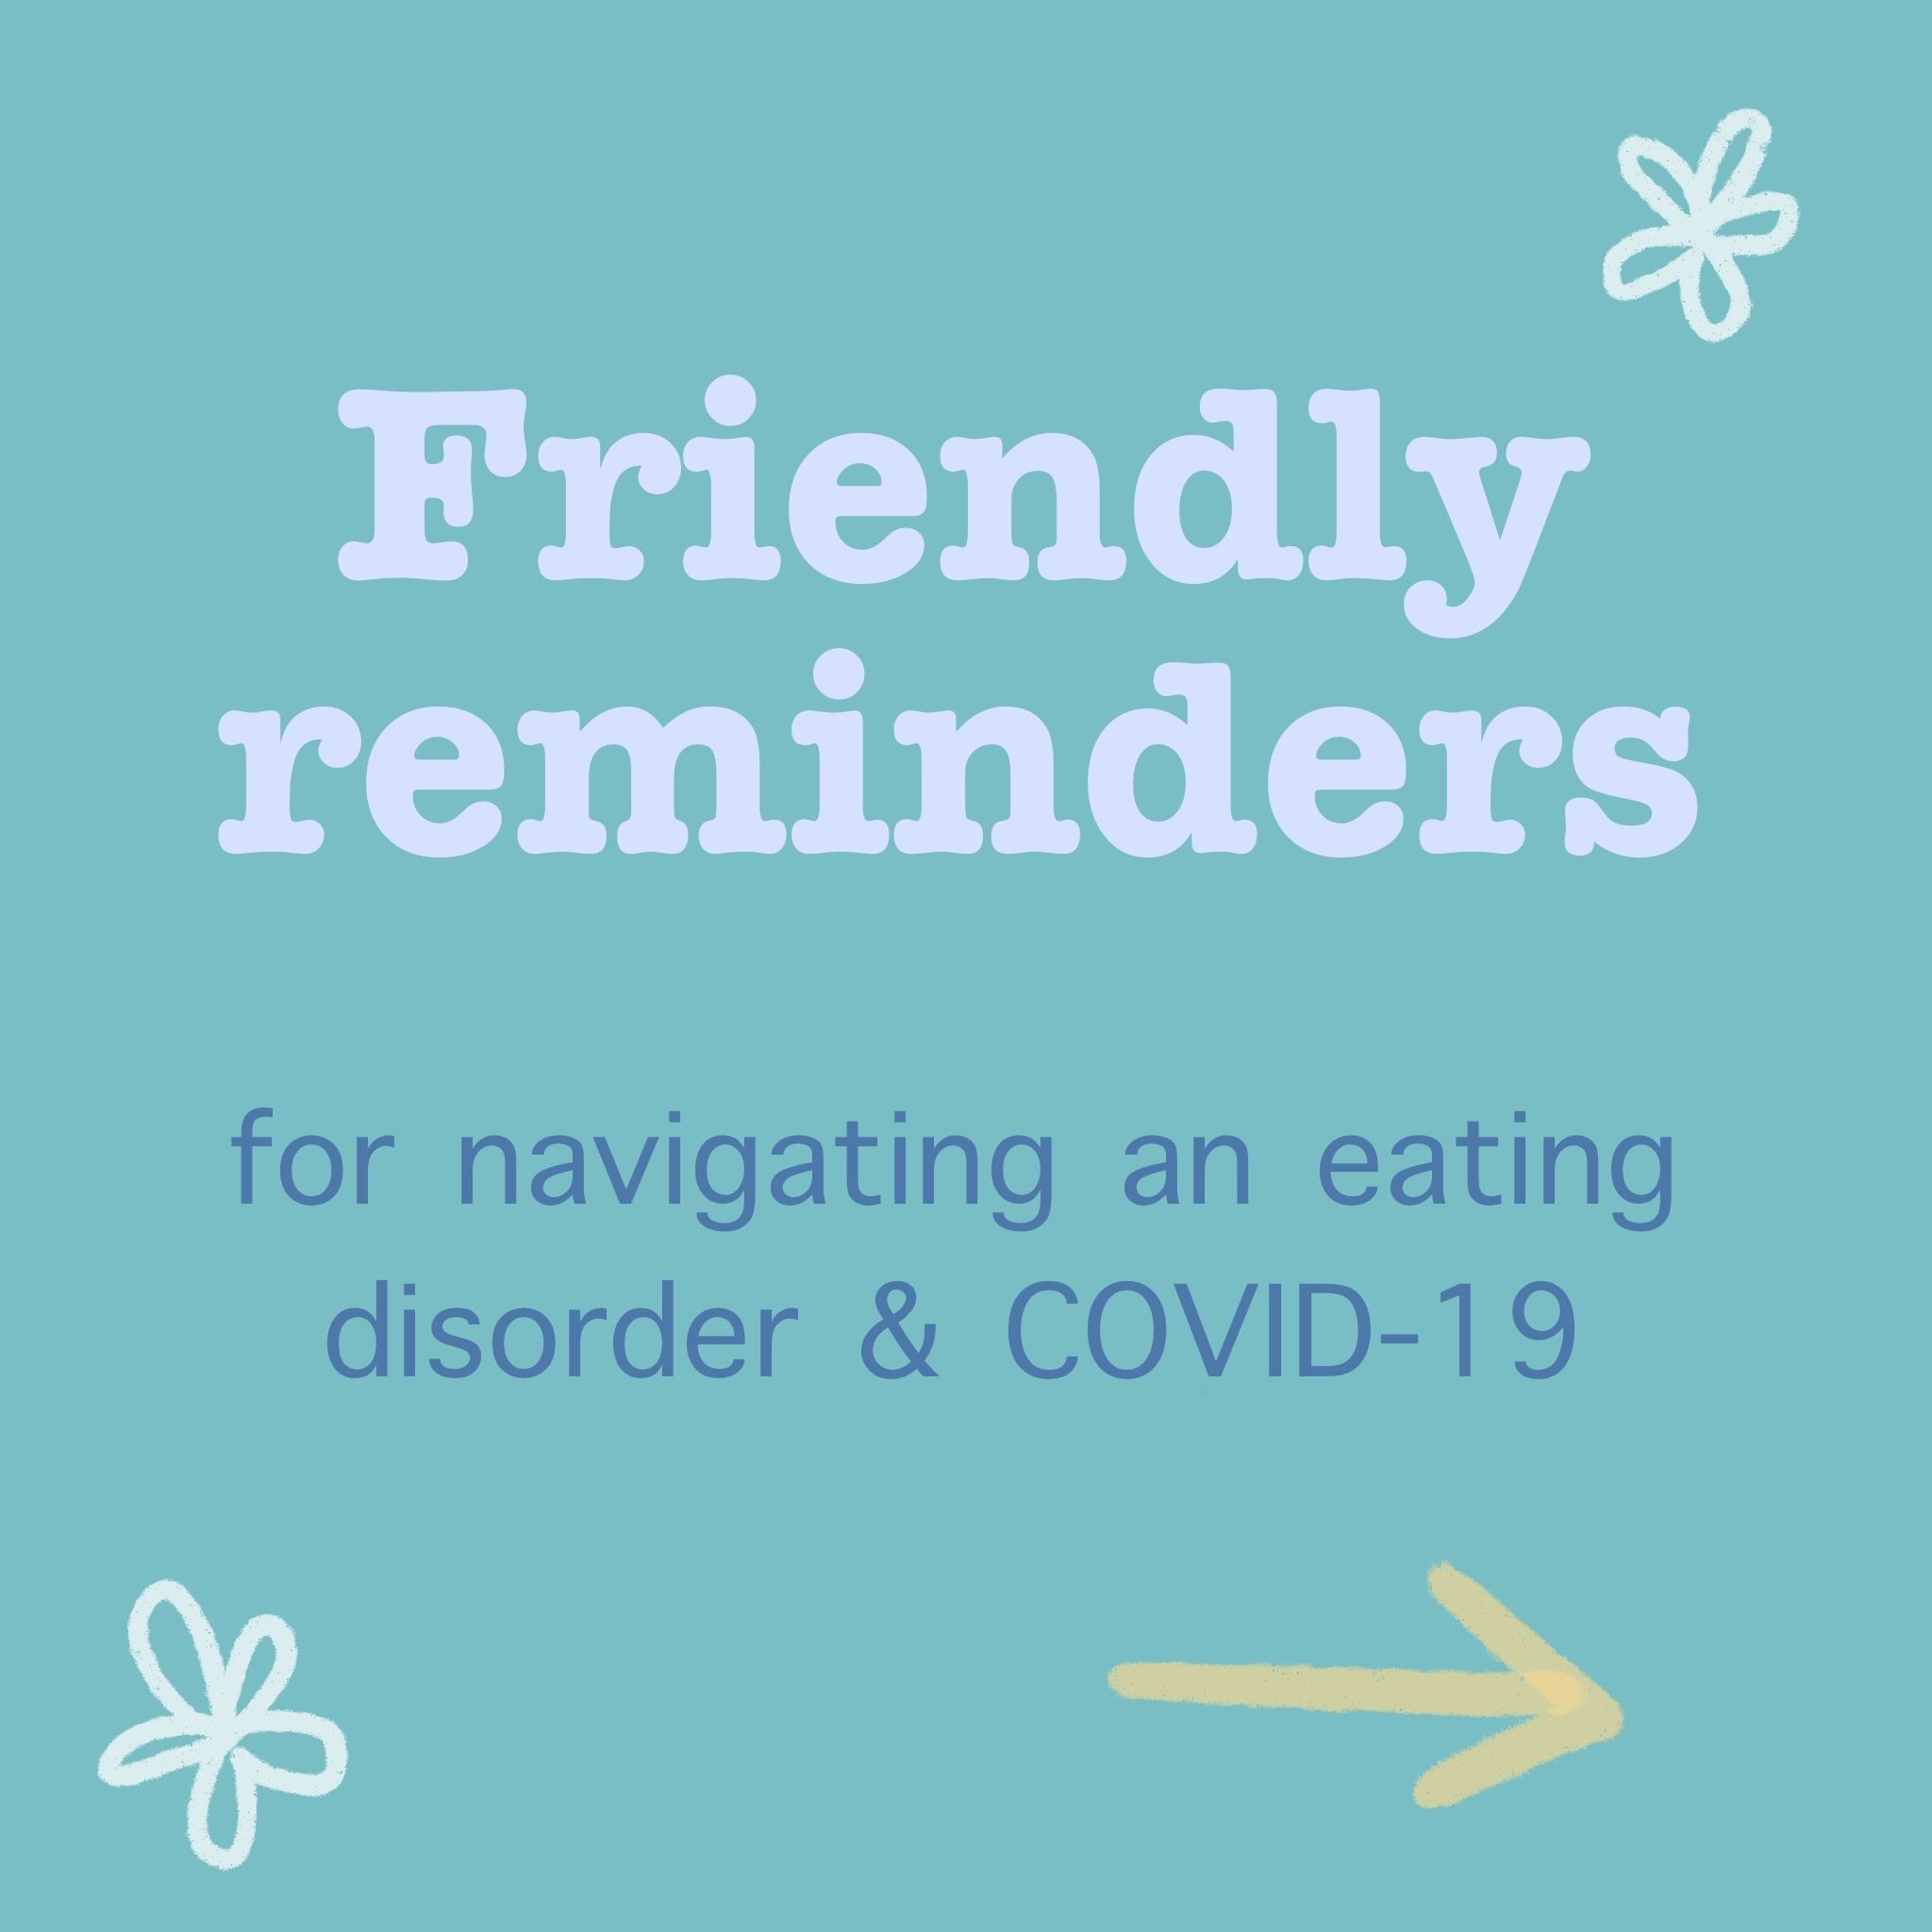 TEXT: Friendly reminders for navigating and eating disorder & COVID-19